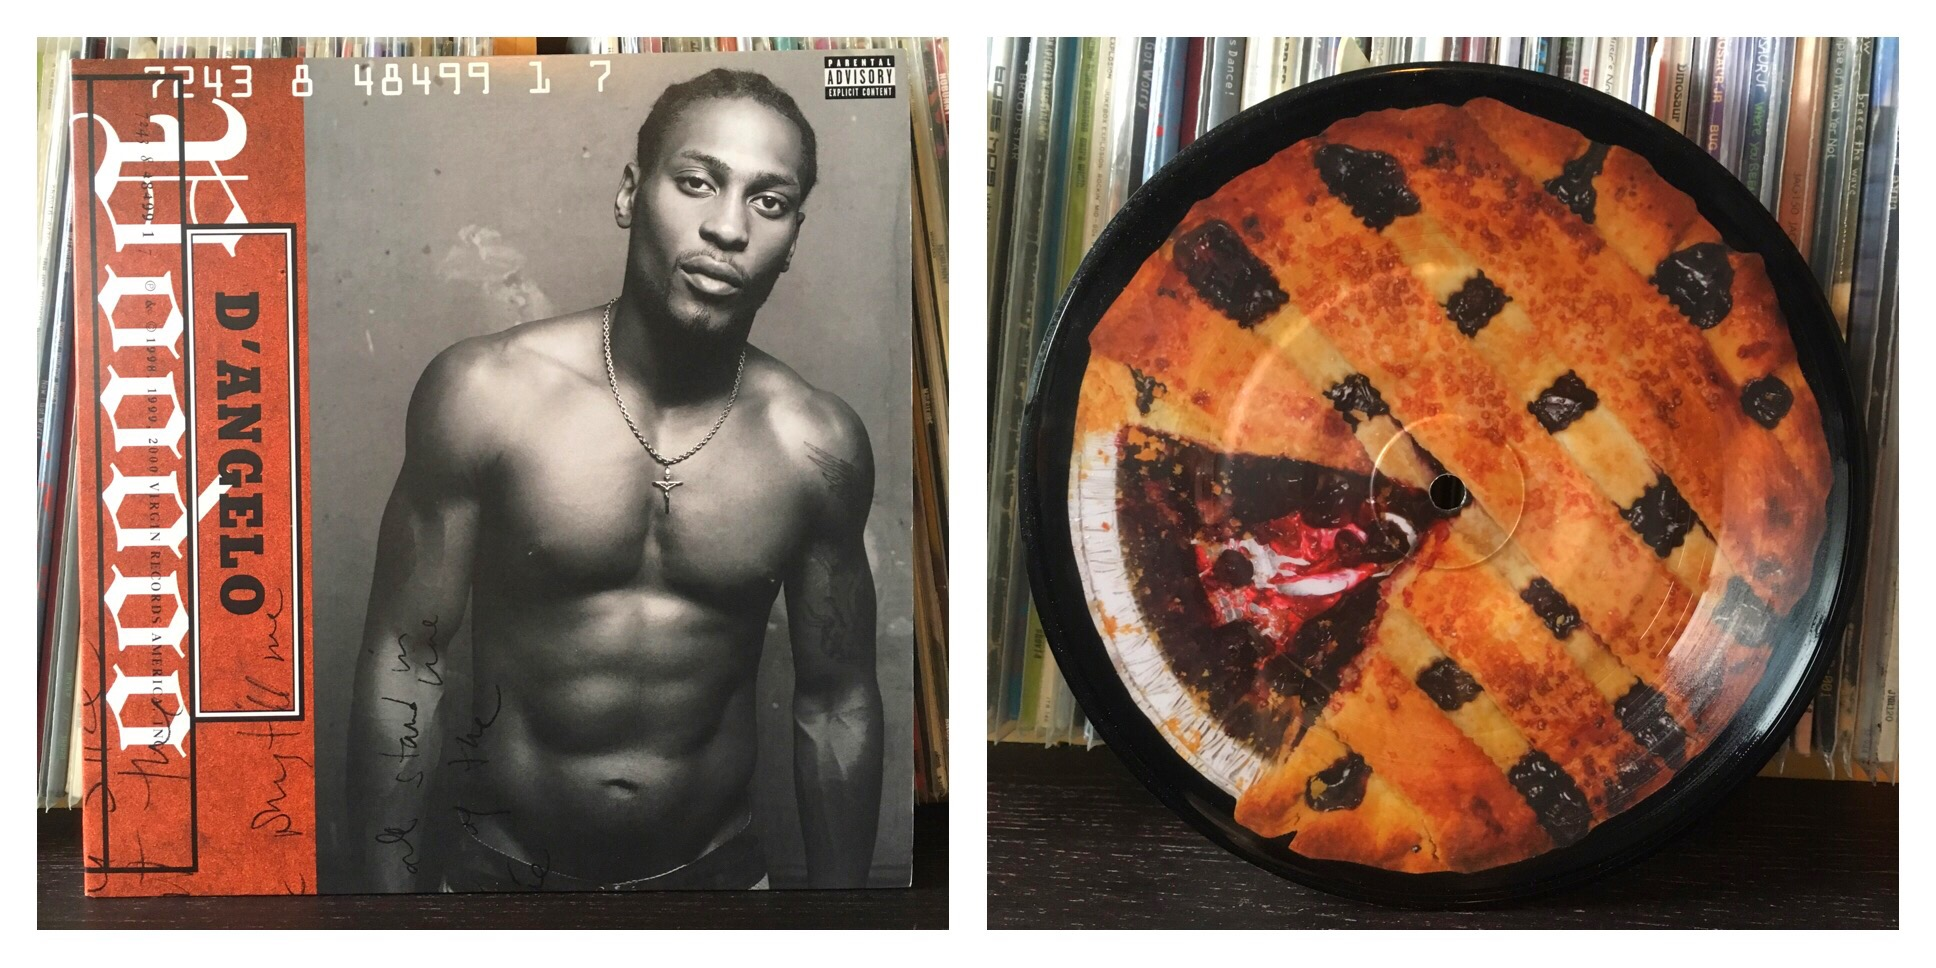 Track 9. Devil's Pie. D'angelo vs. Hanni El Khatib    i very recently did an extensive post on Hanni El Khatib on this very same blog you're reading, so check that out if you haven't! all praises to R&B/soul/blues/funk gawd D'angelo. i grew up on punk & hip hop and never had much love for R&B back then, in the rap era i came up in a major cliche was to talk shit on anything with R&B hooks, though then half the emcees saying that would of course go ahead & eventually do exactly what they had been dissing previously. so anyway, i was late to that game. as i got older & flushed out my musical tastes some more i found i fucked with this cat's music heavy. i segued into some neo-soul like this through rocking Dilla & Soulquarians. HEK is a master of covers (so yup you guessed it... more on vol. 2), he kills his version of the classic originally from Voodoo & co-produced by DJ Premier of Gang Starr. plus it was pressed on that delicious pie picture disc for RSD2015